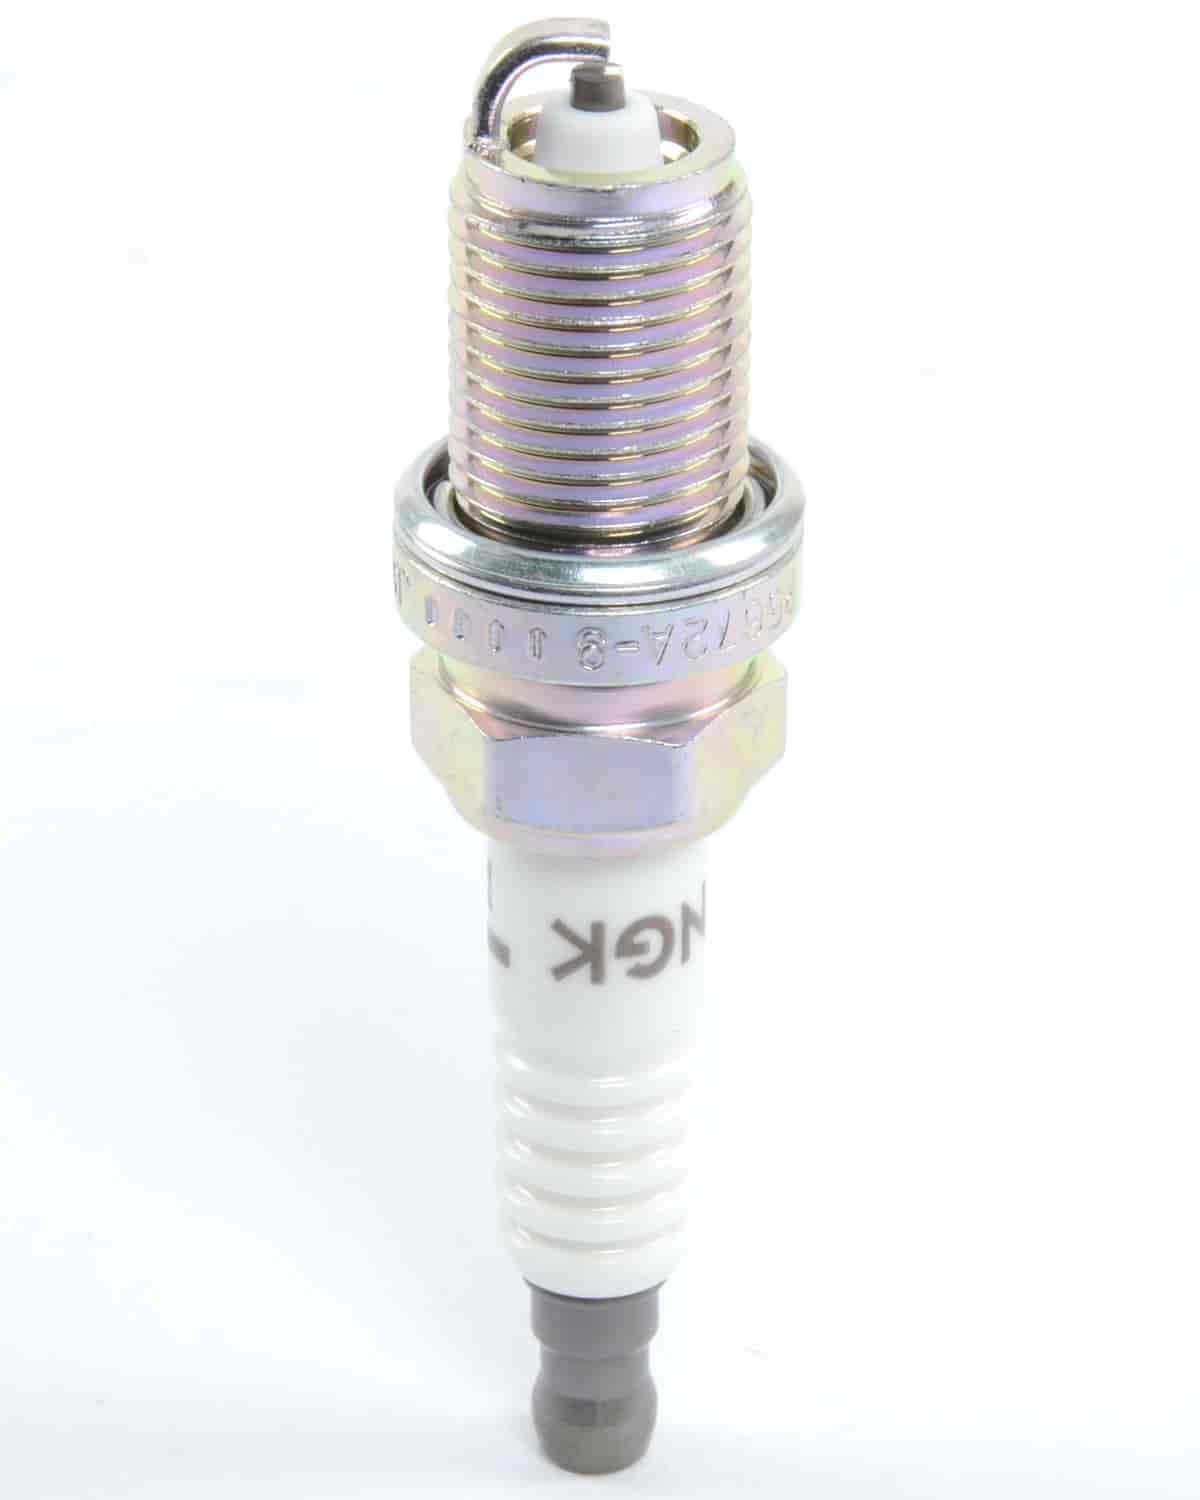 NGK Spark Plugs R5672A-9: Racing Non-Resistor Spark Plug 14mm x 3/4 ...